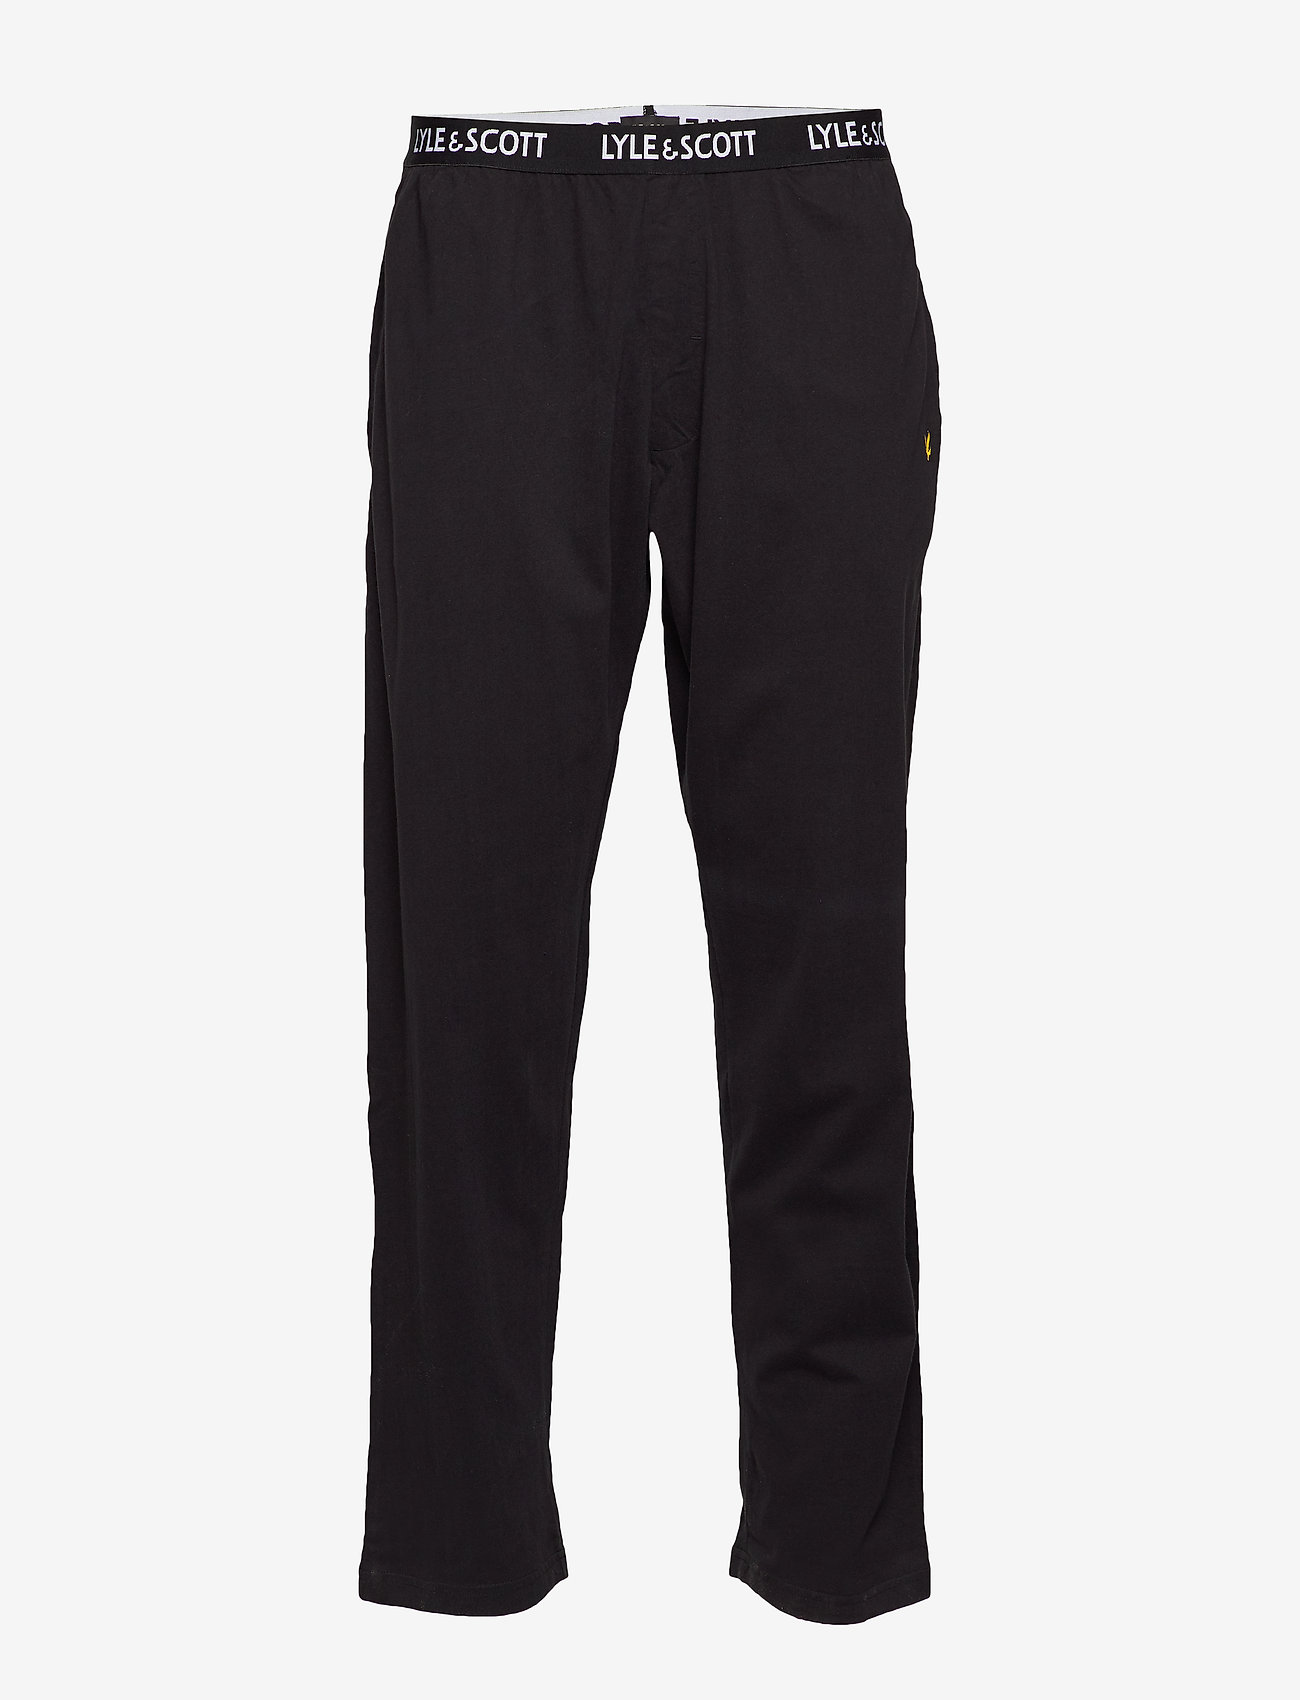 Lyle & Scott - ALASTAIR - bottoms - black - 0